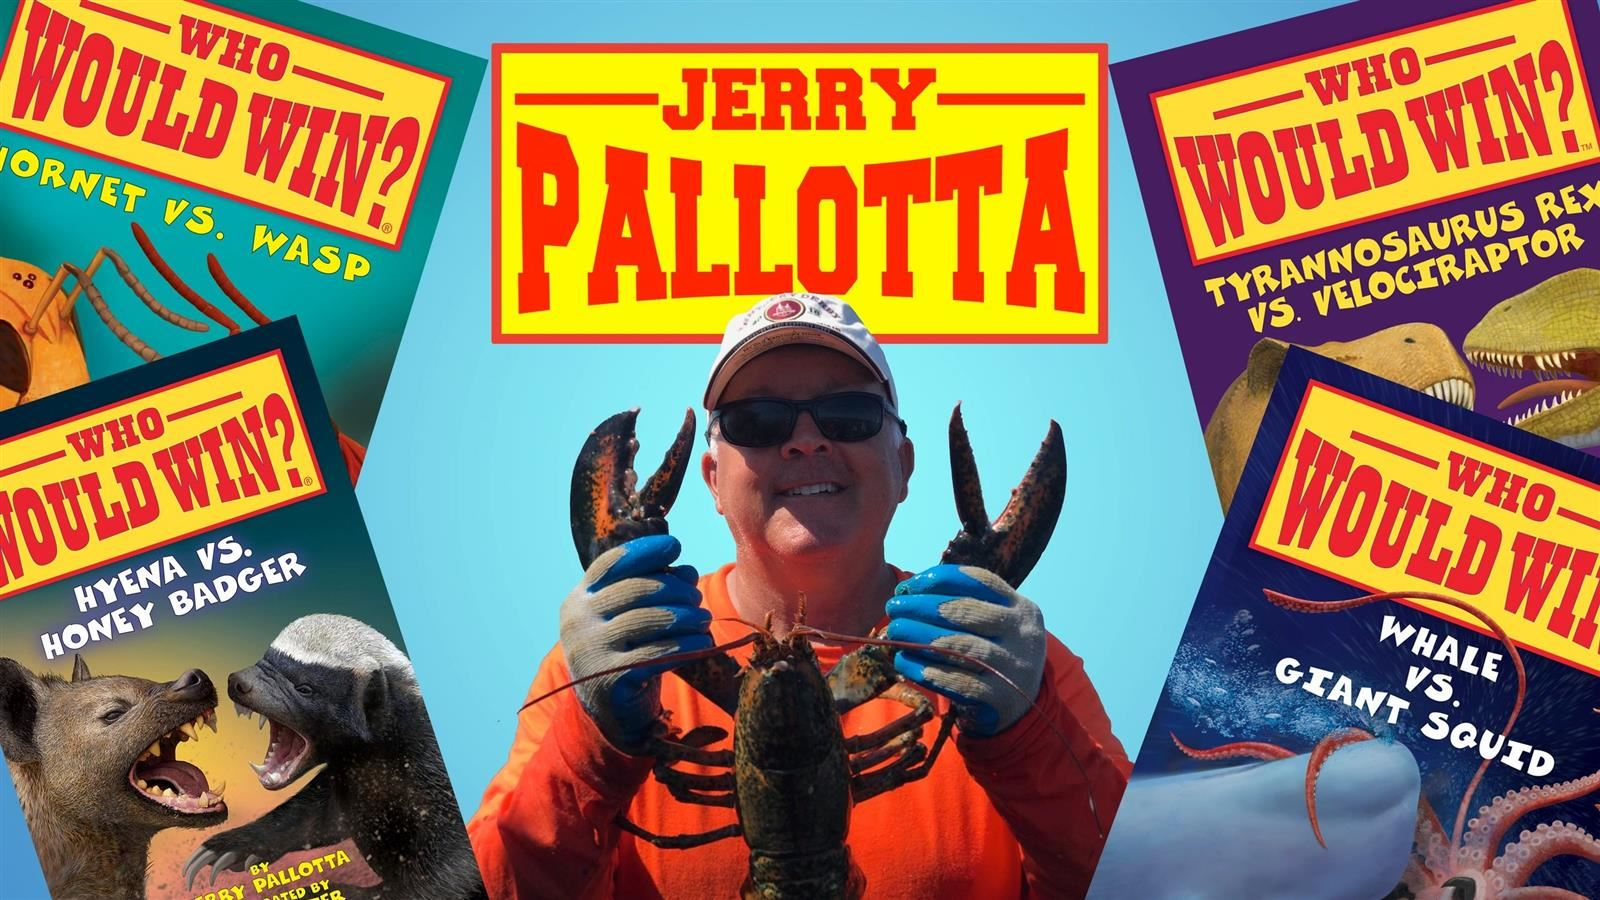 Jerry Pallotta - Visiting Author